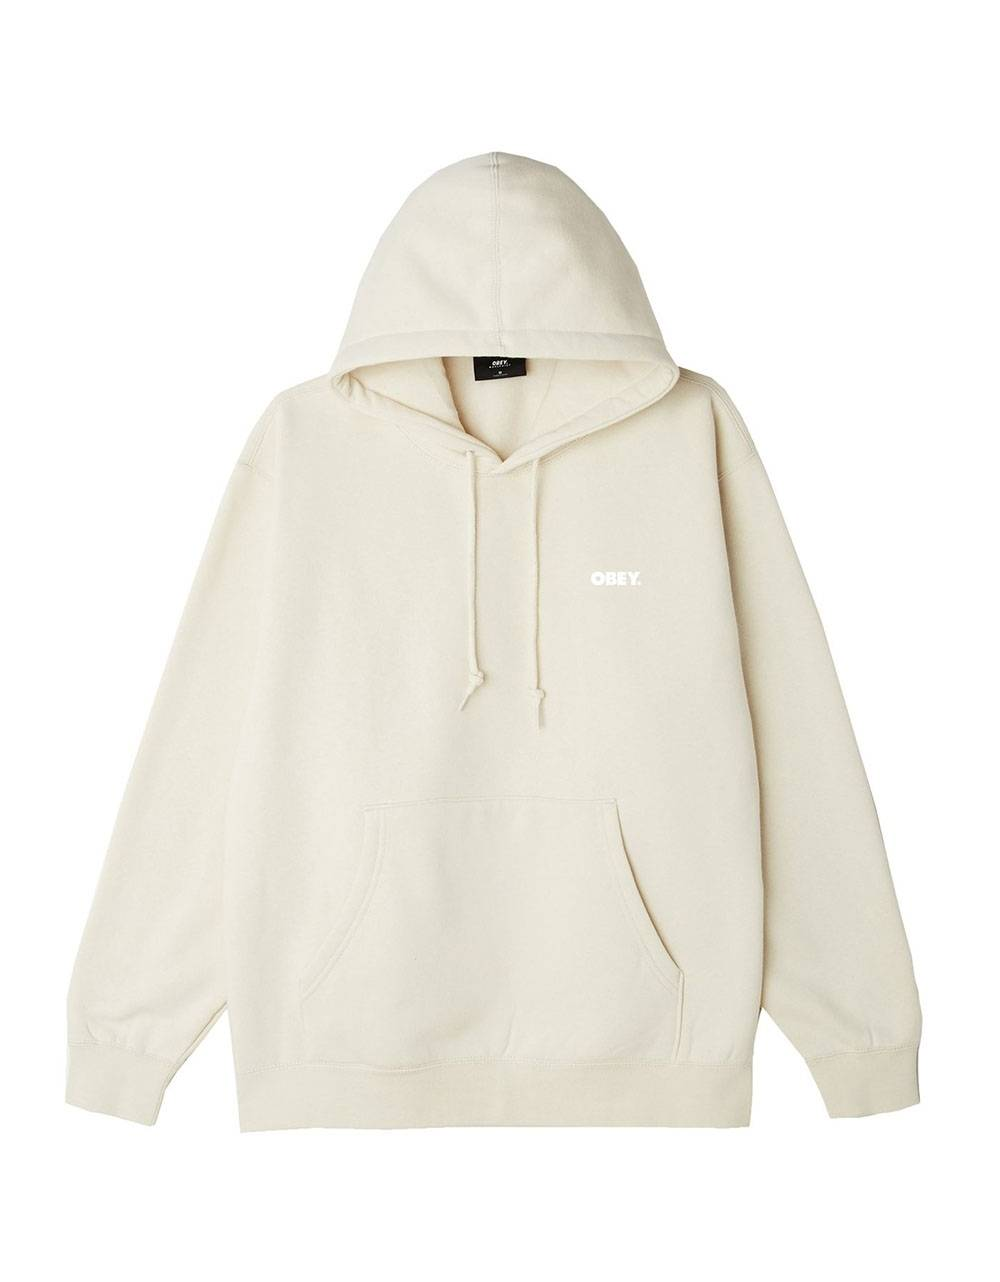 Obey resistance premium hoodie - natural obey Sweater 81,15 €